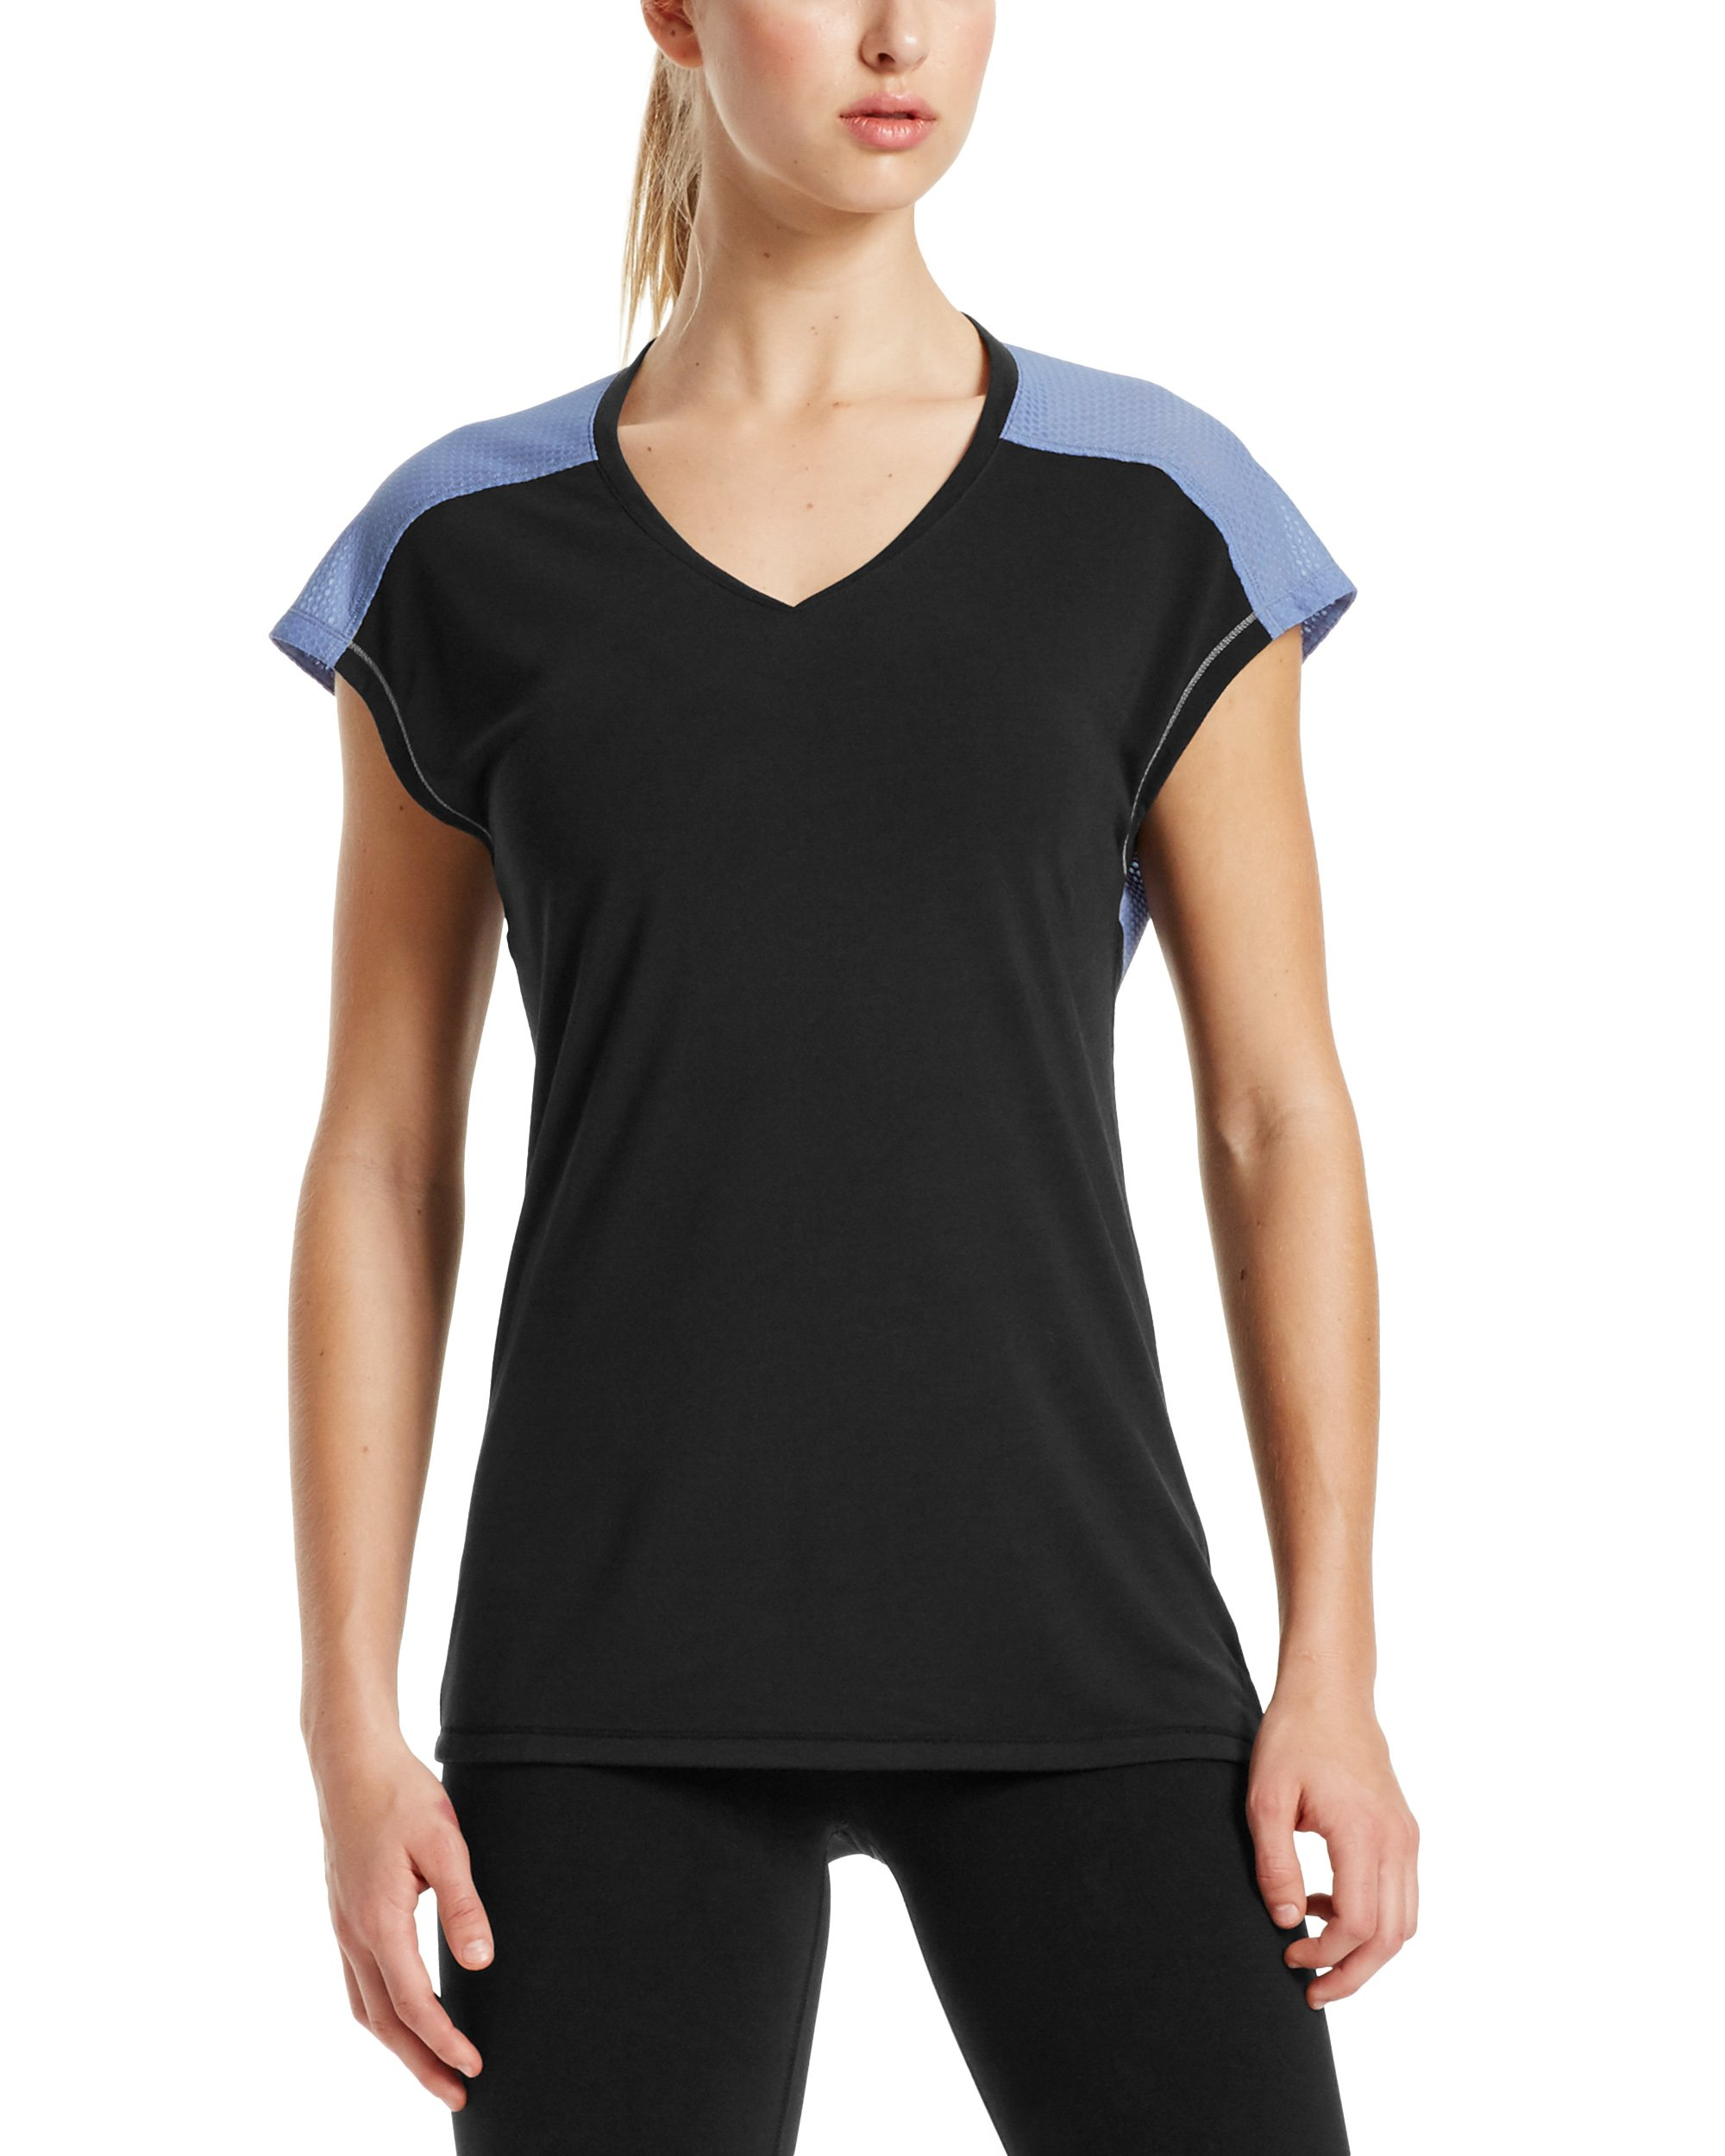 Mission Women's VaporActive Isobar Open Back Top, Moonless Night/English Manor, Large